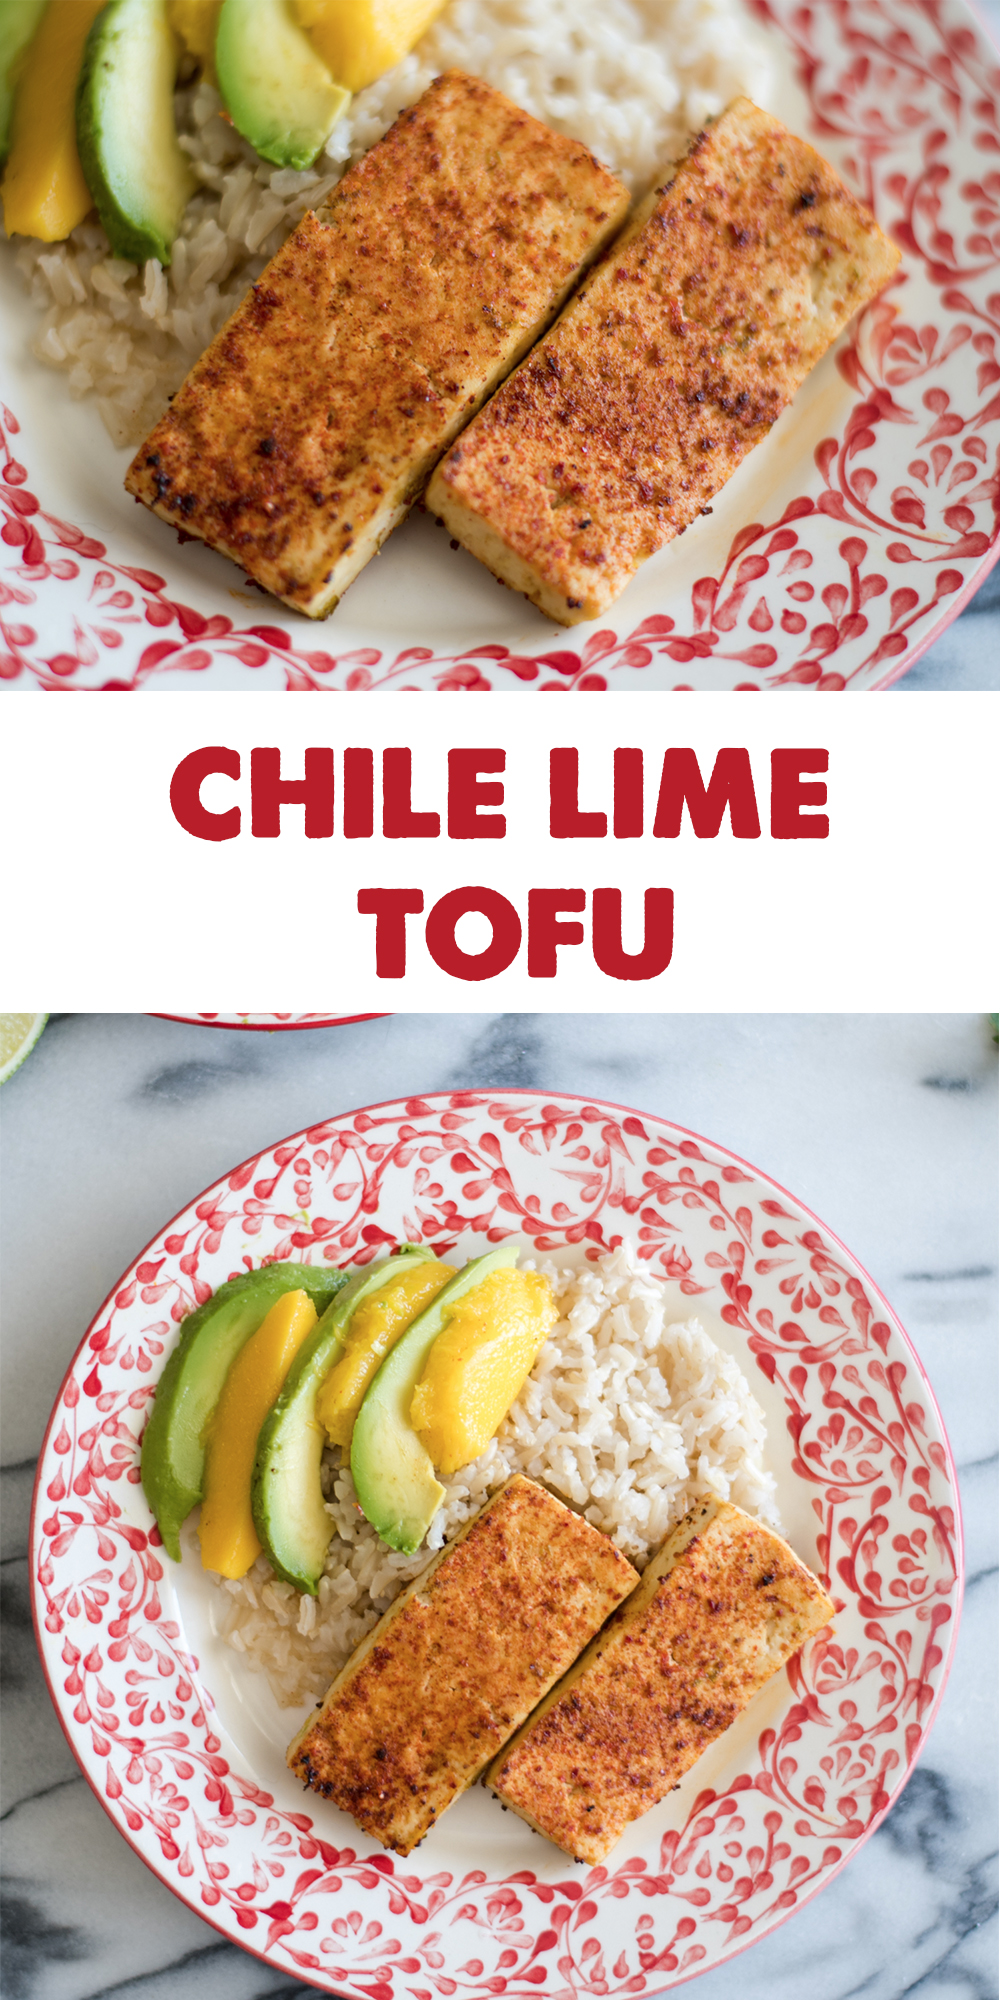 Chile Lime Tofu is packed with flavor. Chile lime seasoning adds so much flavor. So easy to make too! #vegan #tofu #vegetarian #chile #lime #recipes #glutenfree #meatless #plantbased